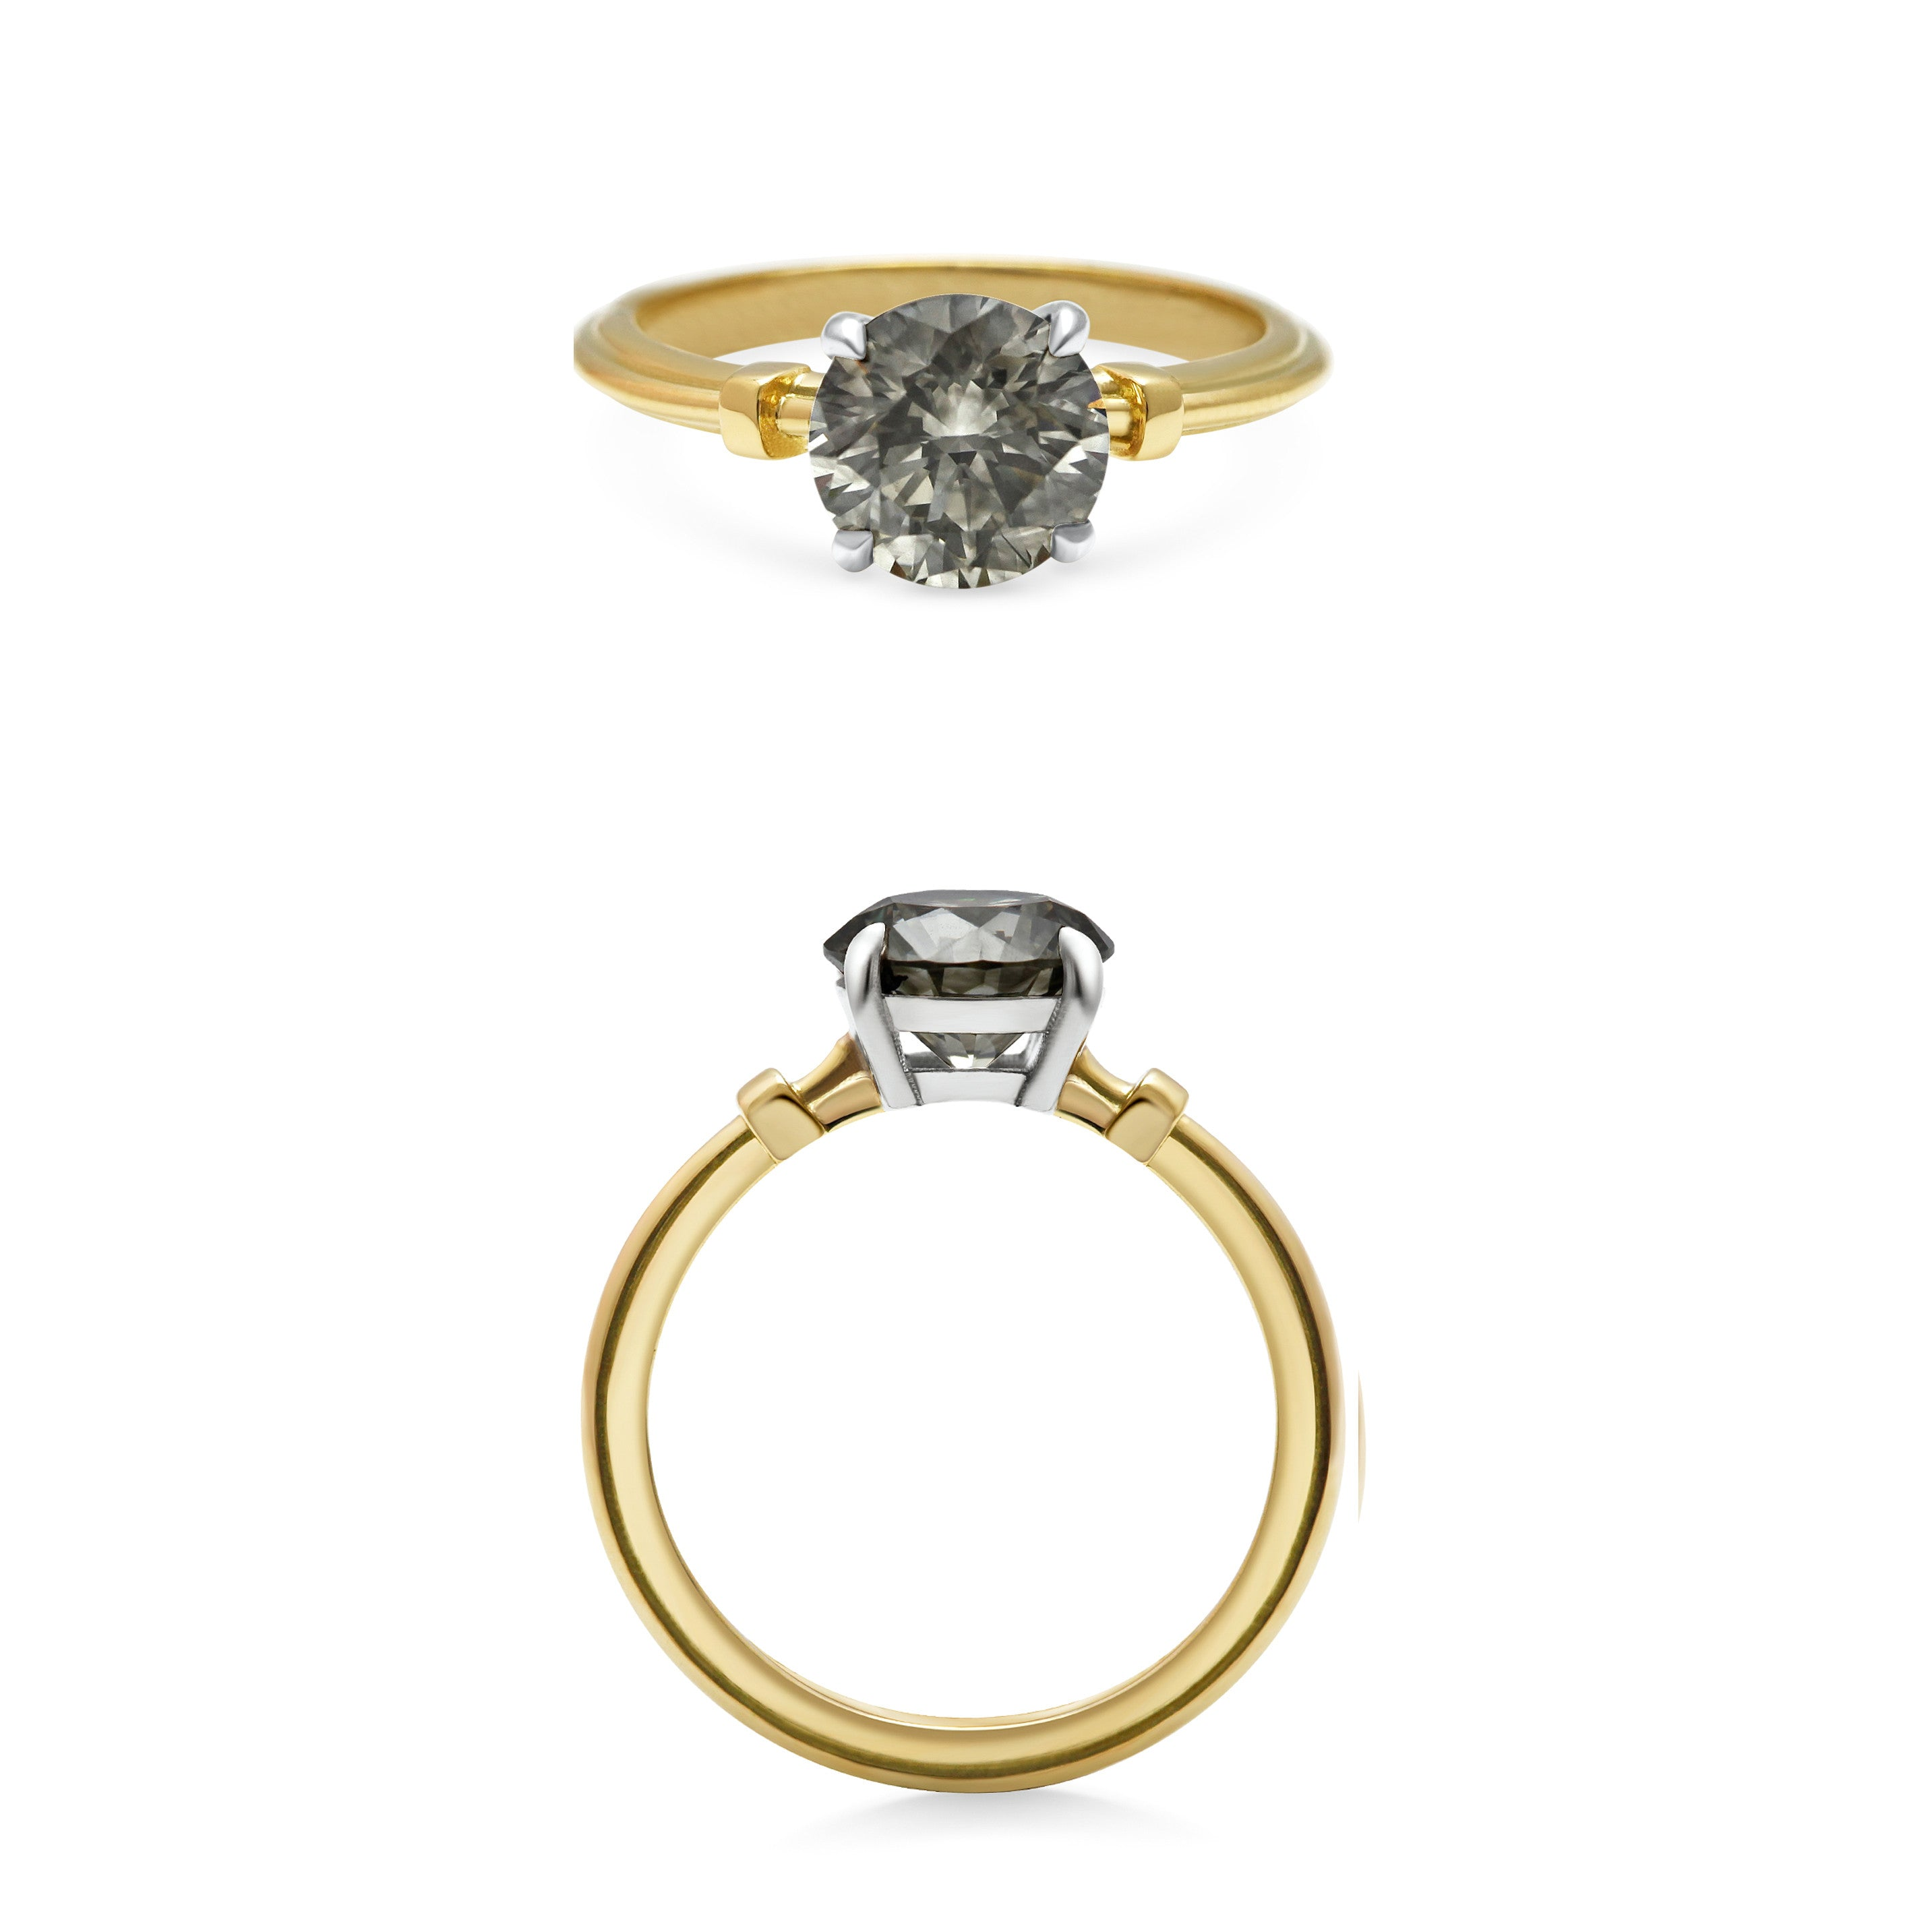 1.55ct Fancy Grey Diamond, Platinum setting and 18ct Yellow Gold Band